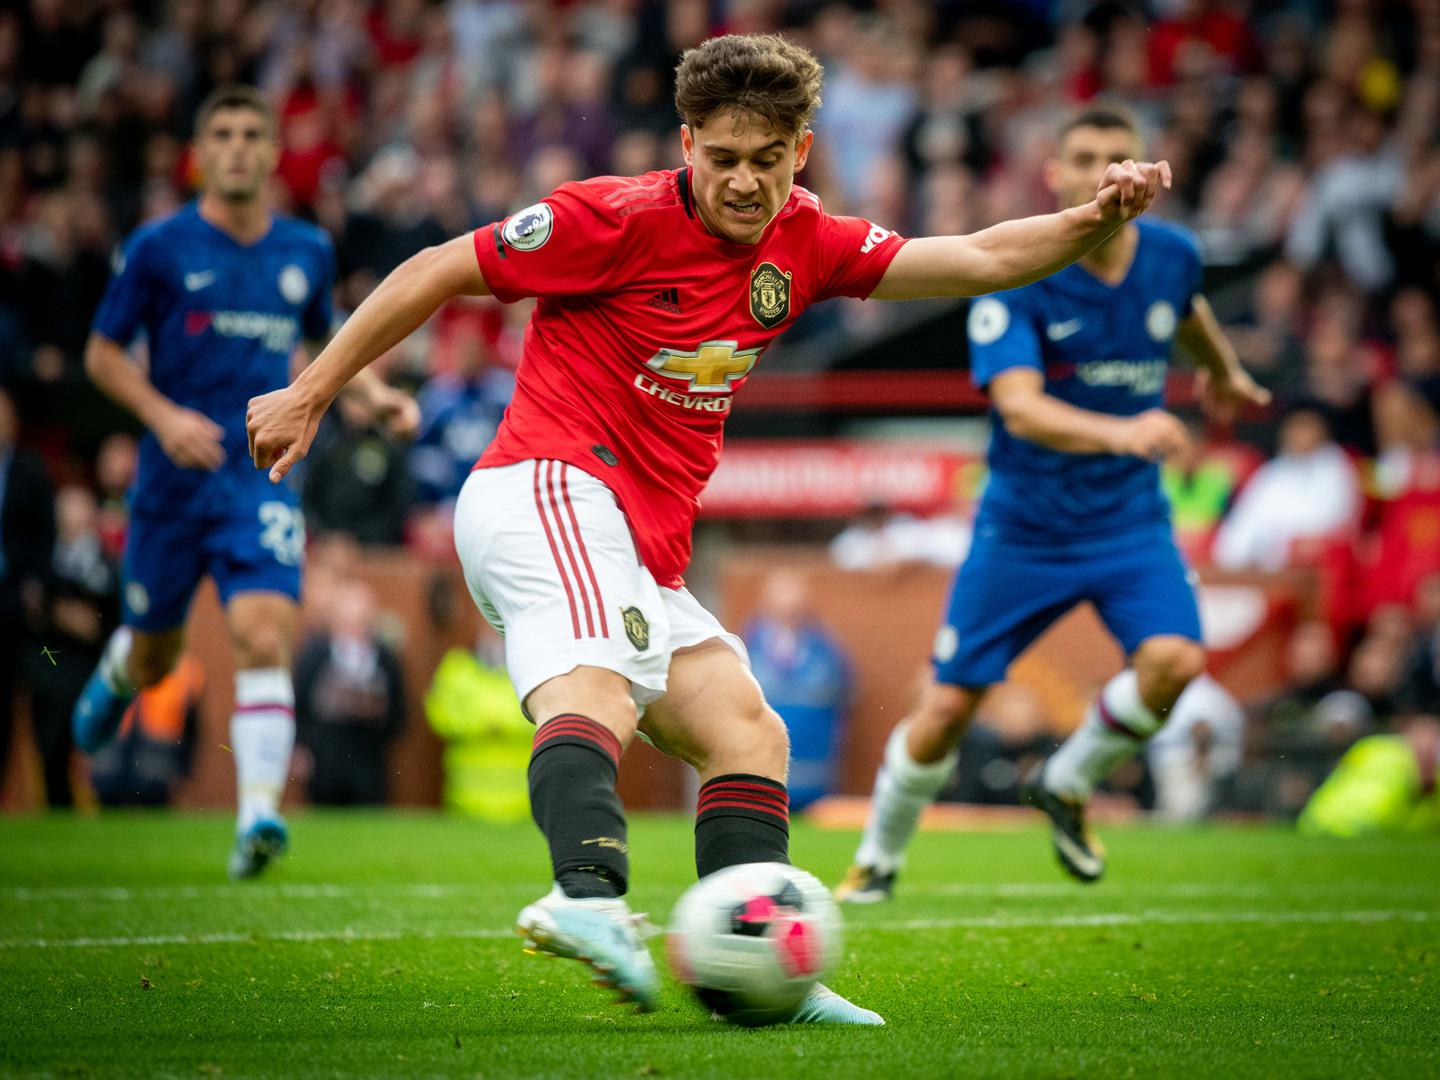 Daniel James scores against Chelsea in the Premier League